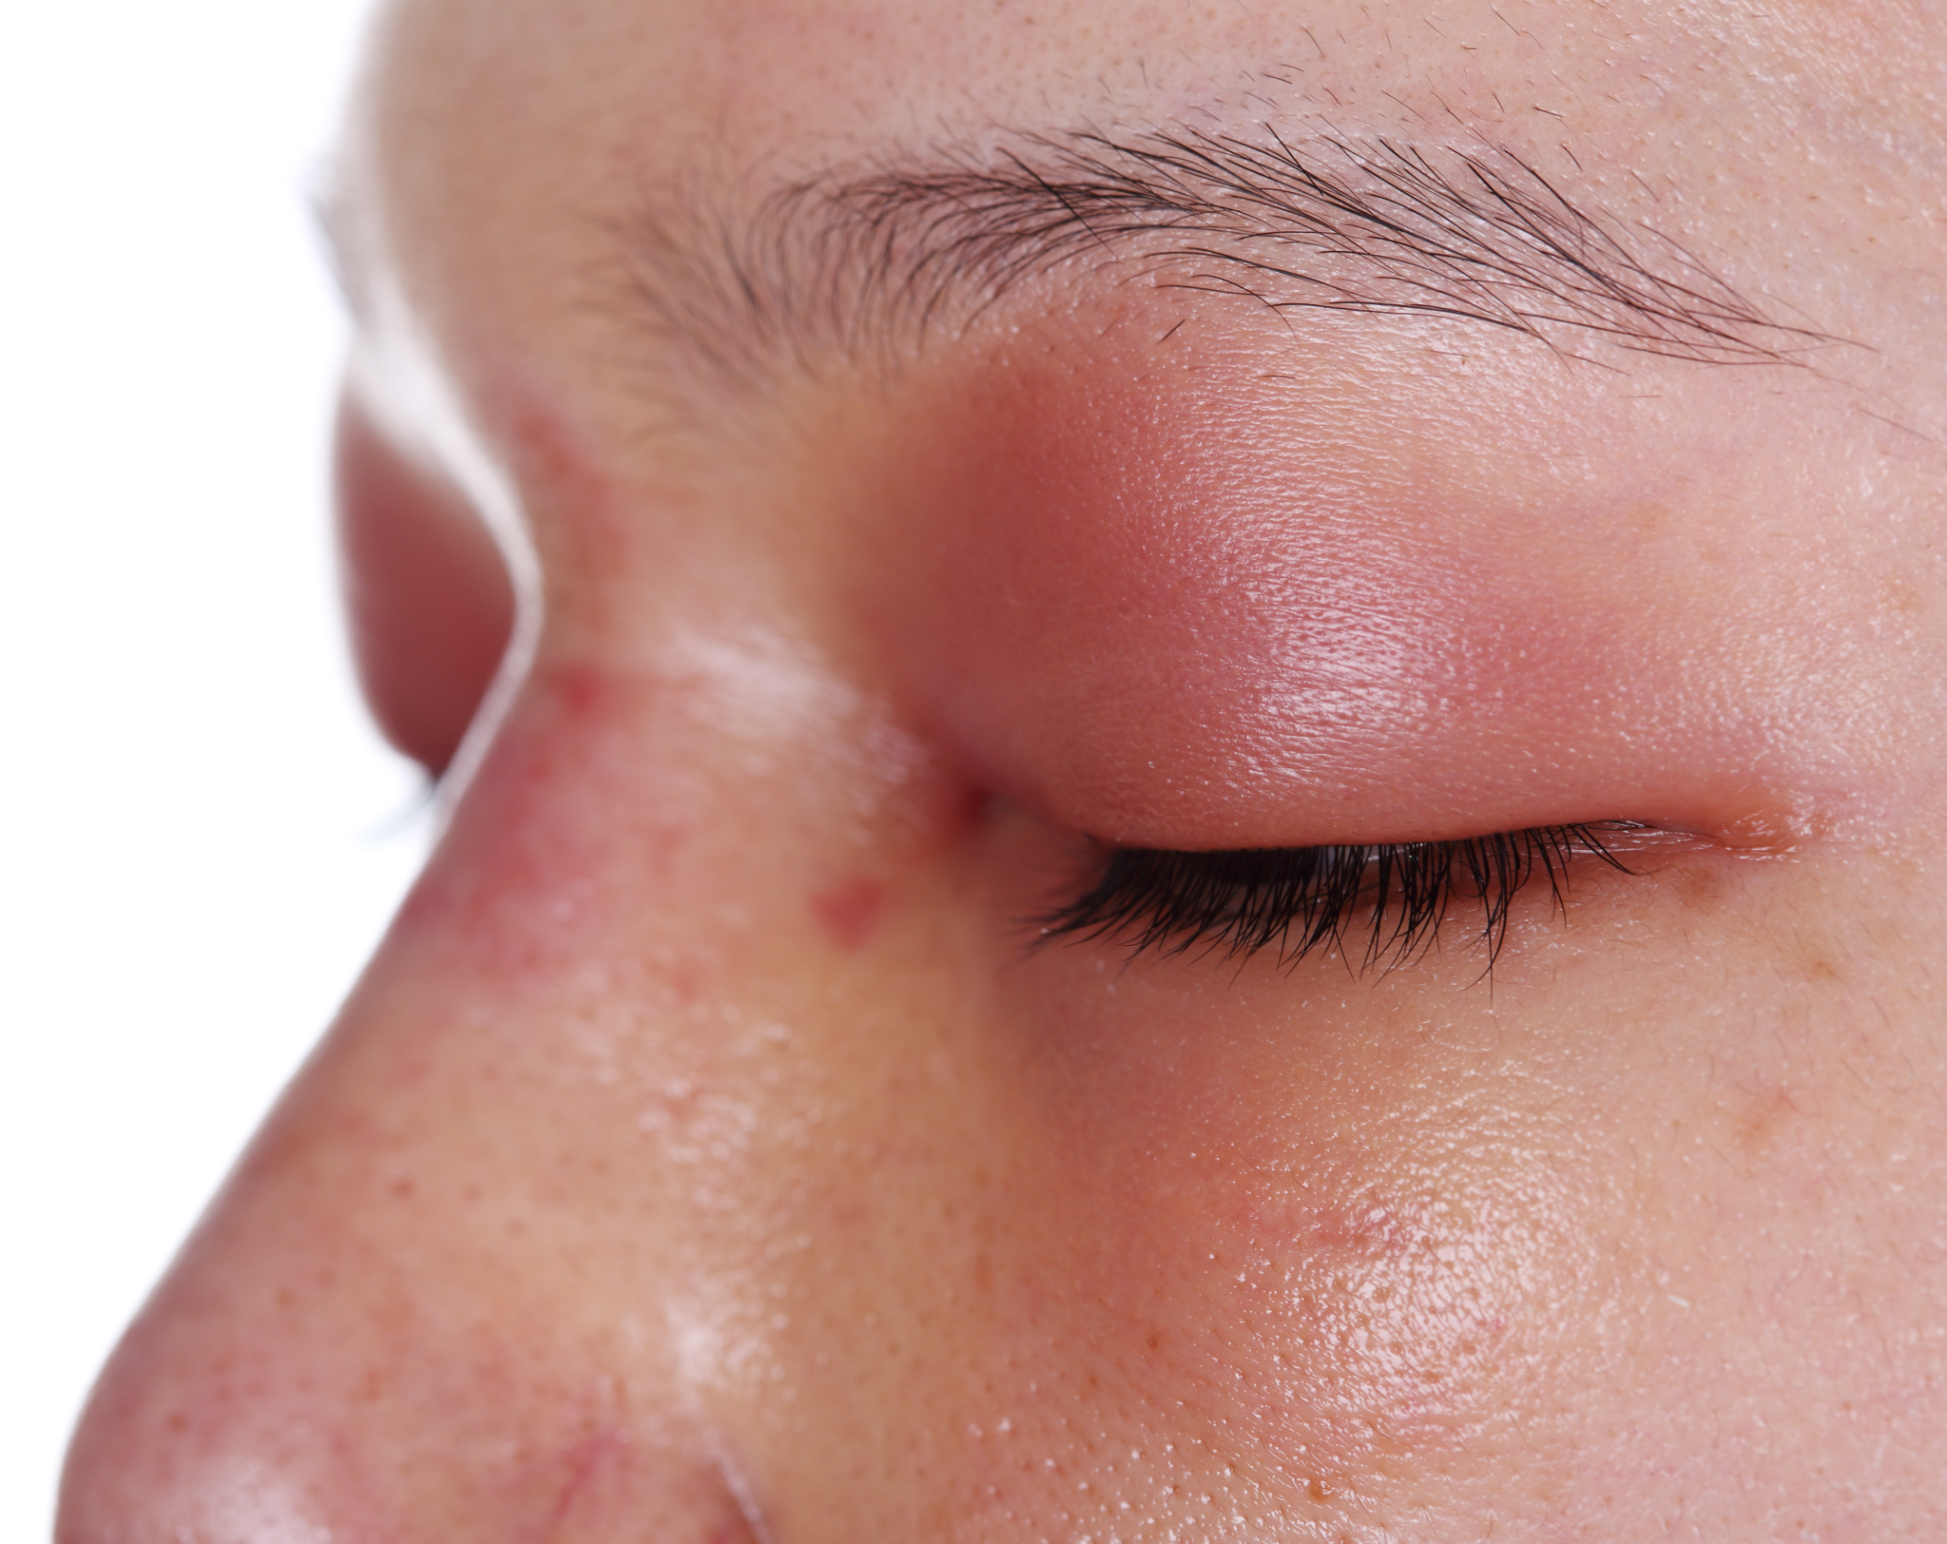 An Allergic Reaction That Causes the Eyes to Swell